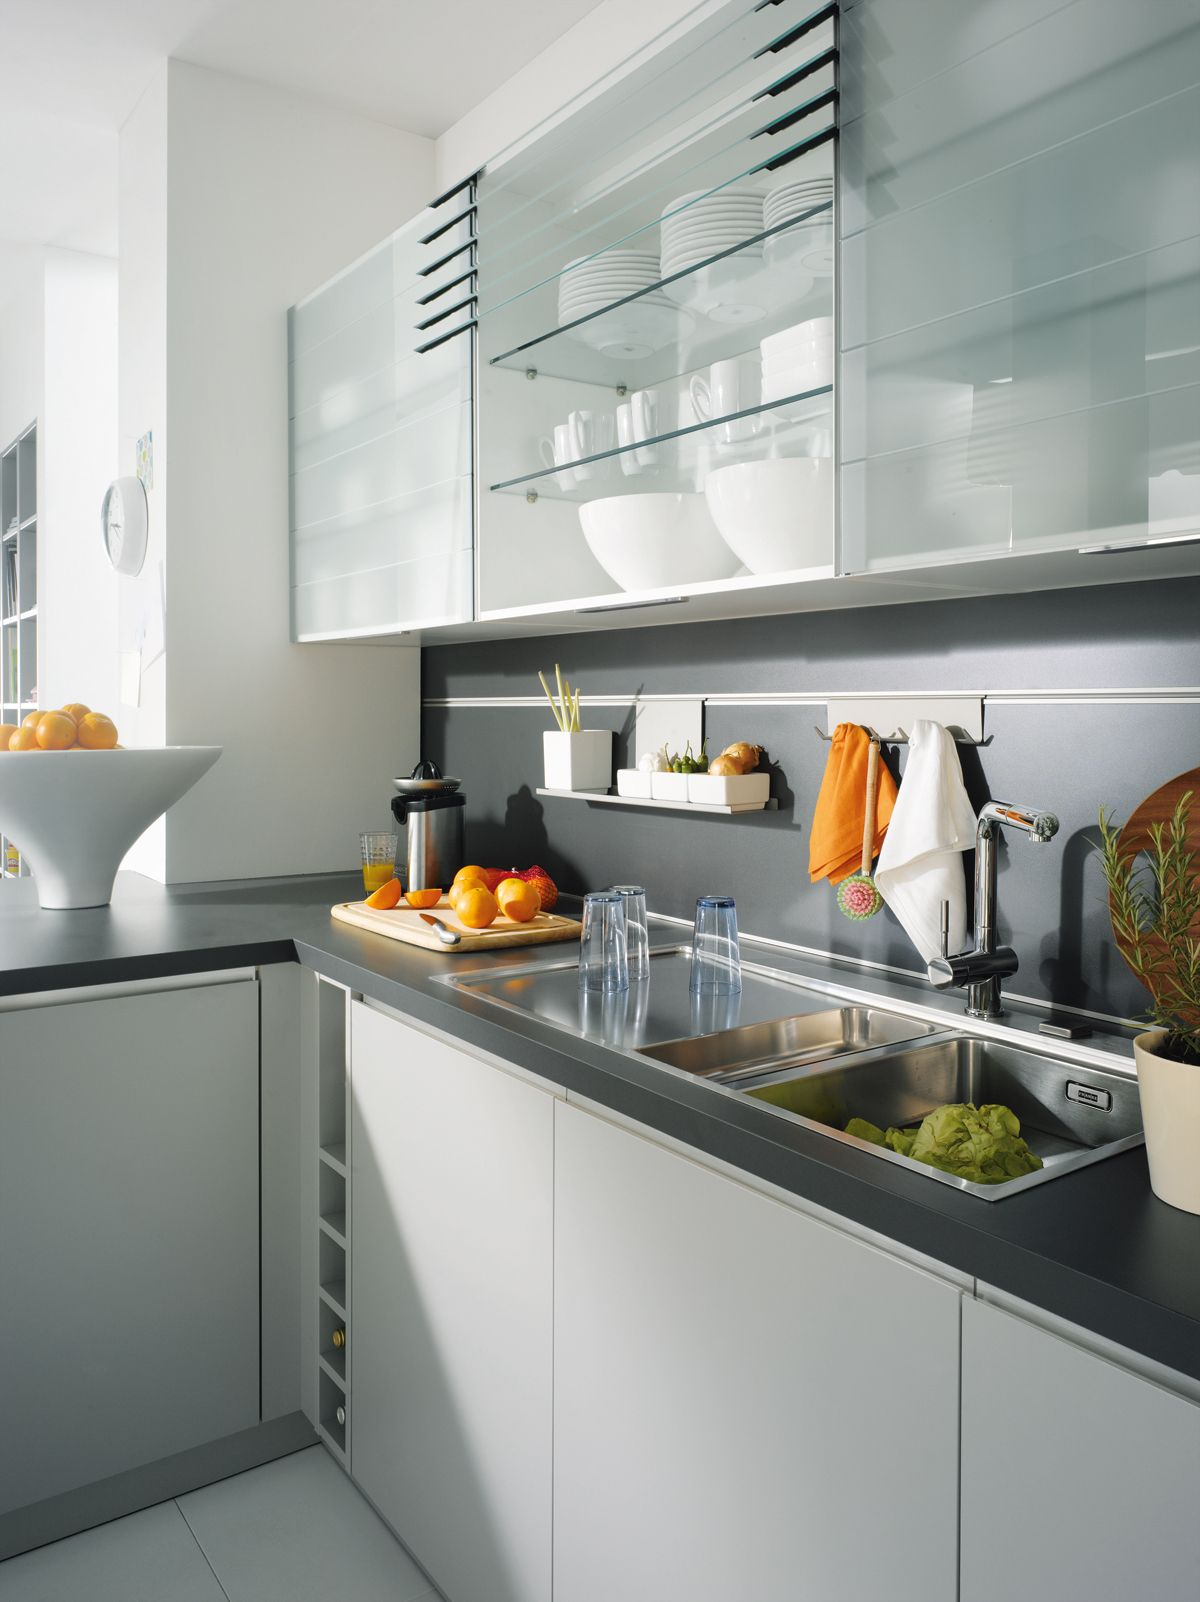 Make a Schüller kitchen your own by adding small extras